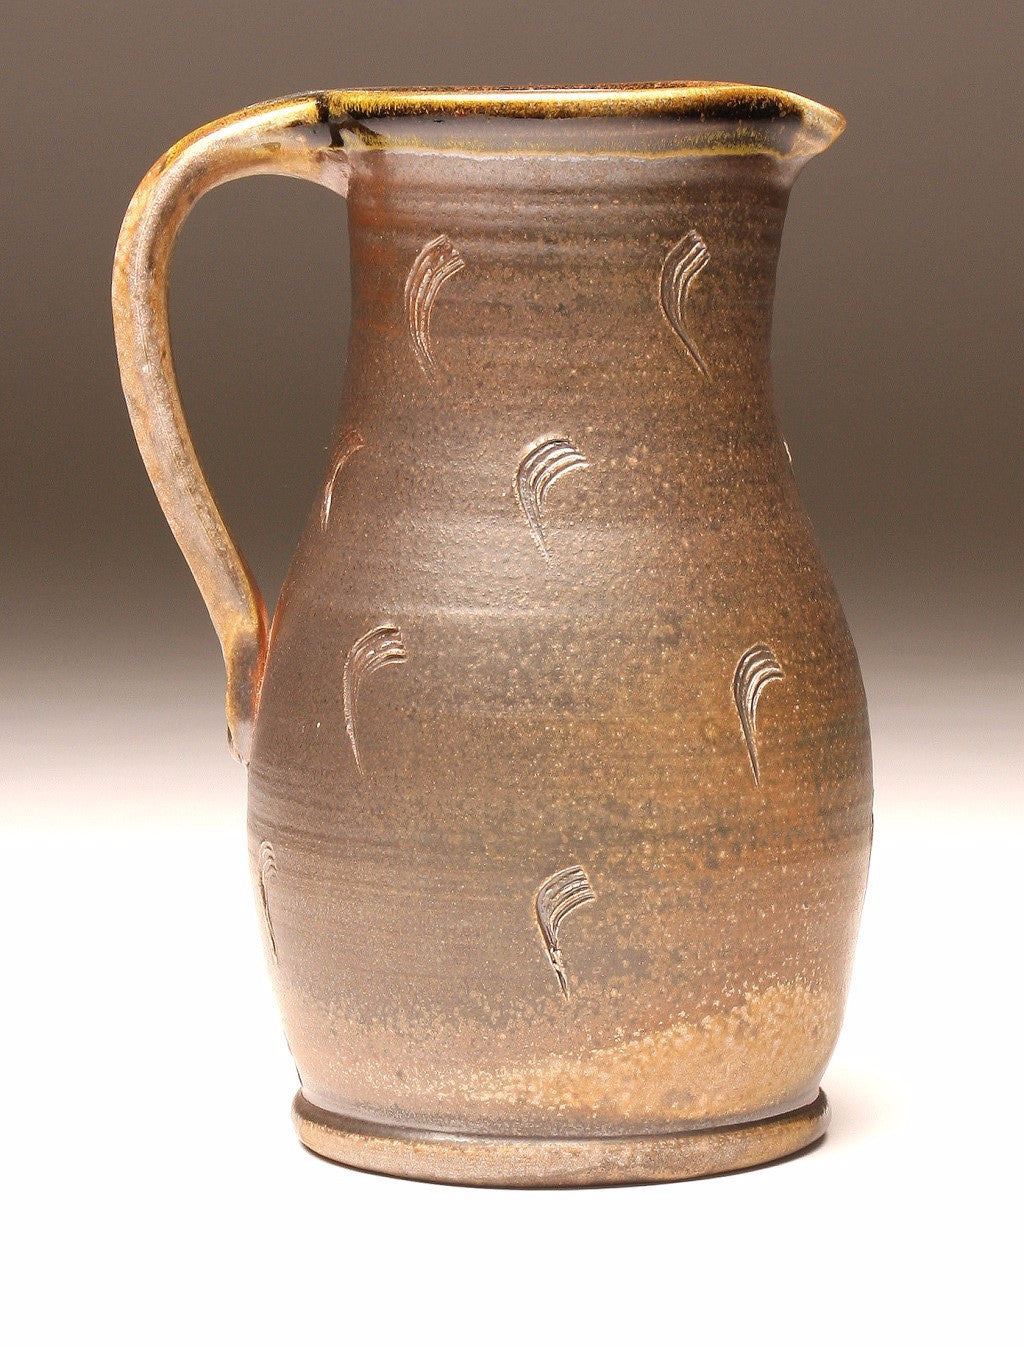 GH021 Woodfired Pitcher